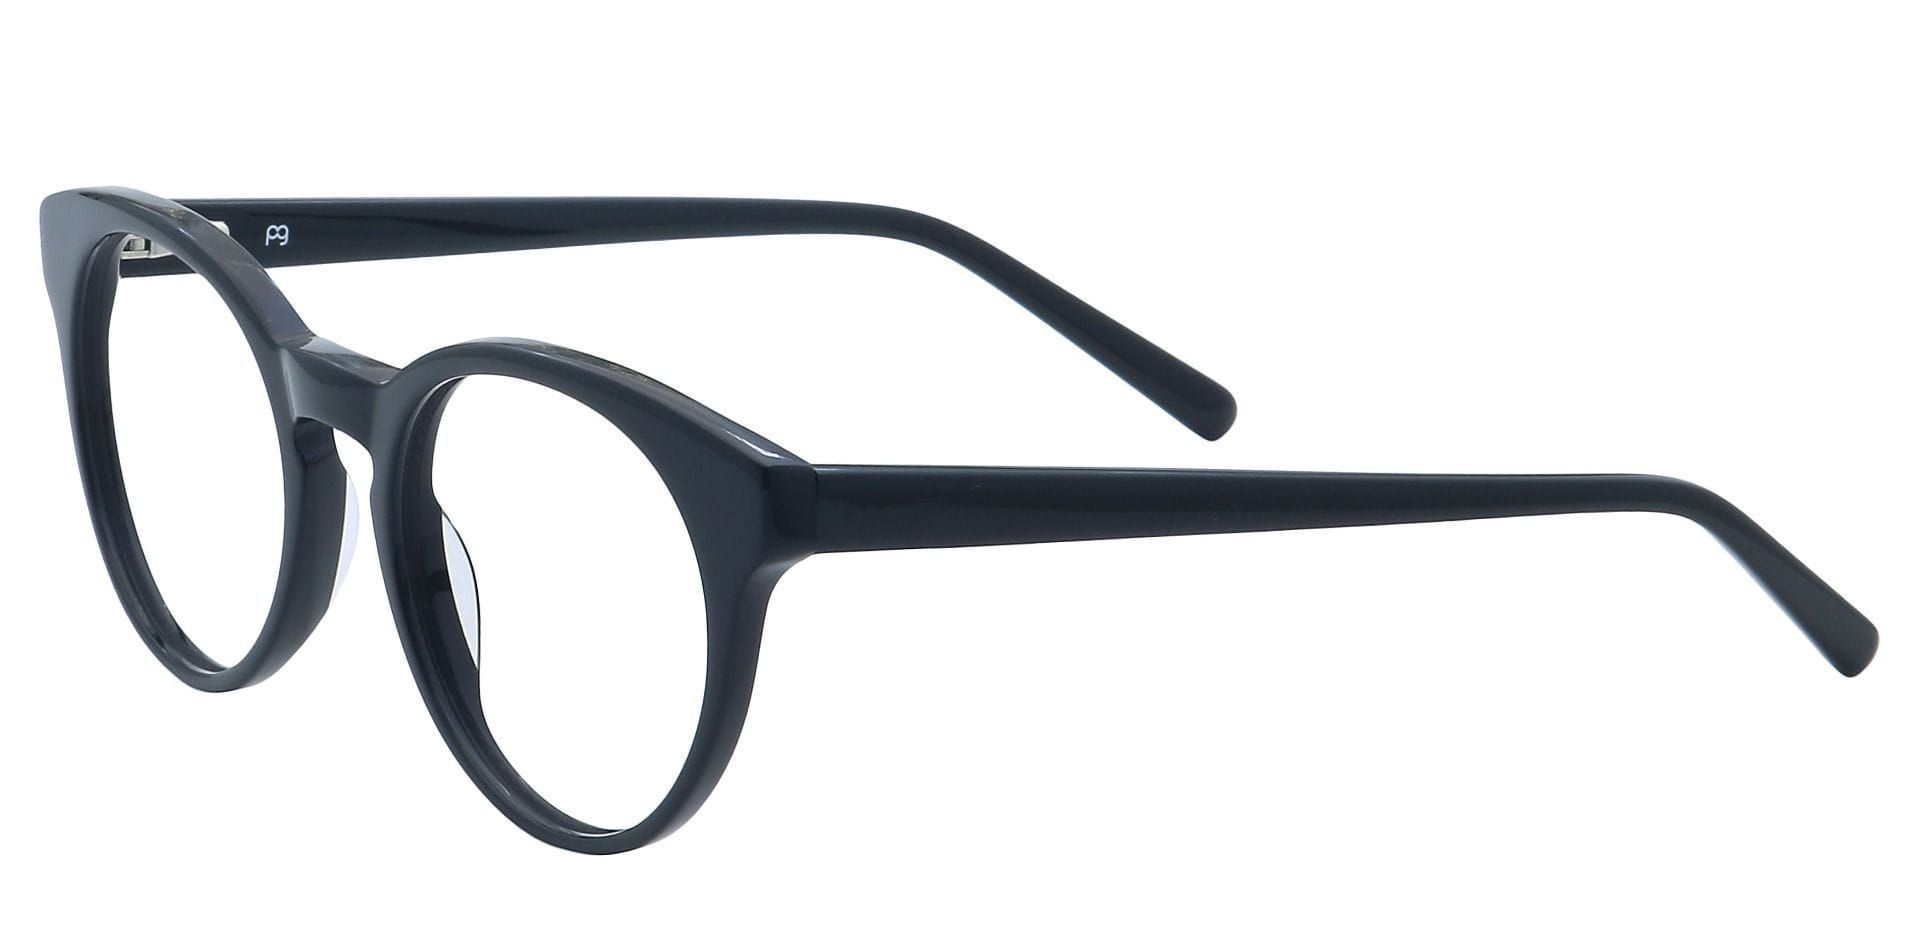 Spright Round Eyeglasses Frame - Shiny Black